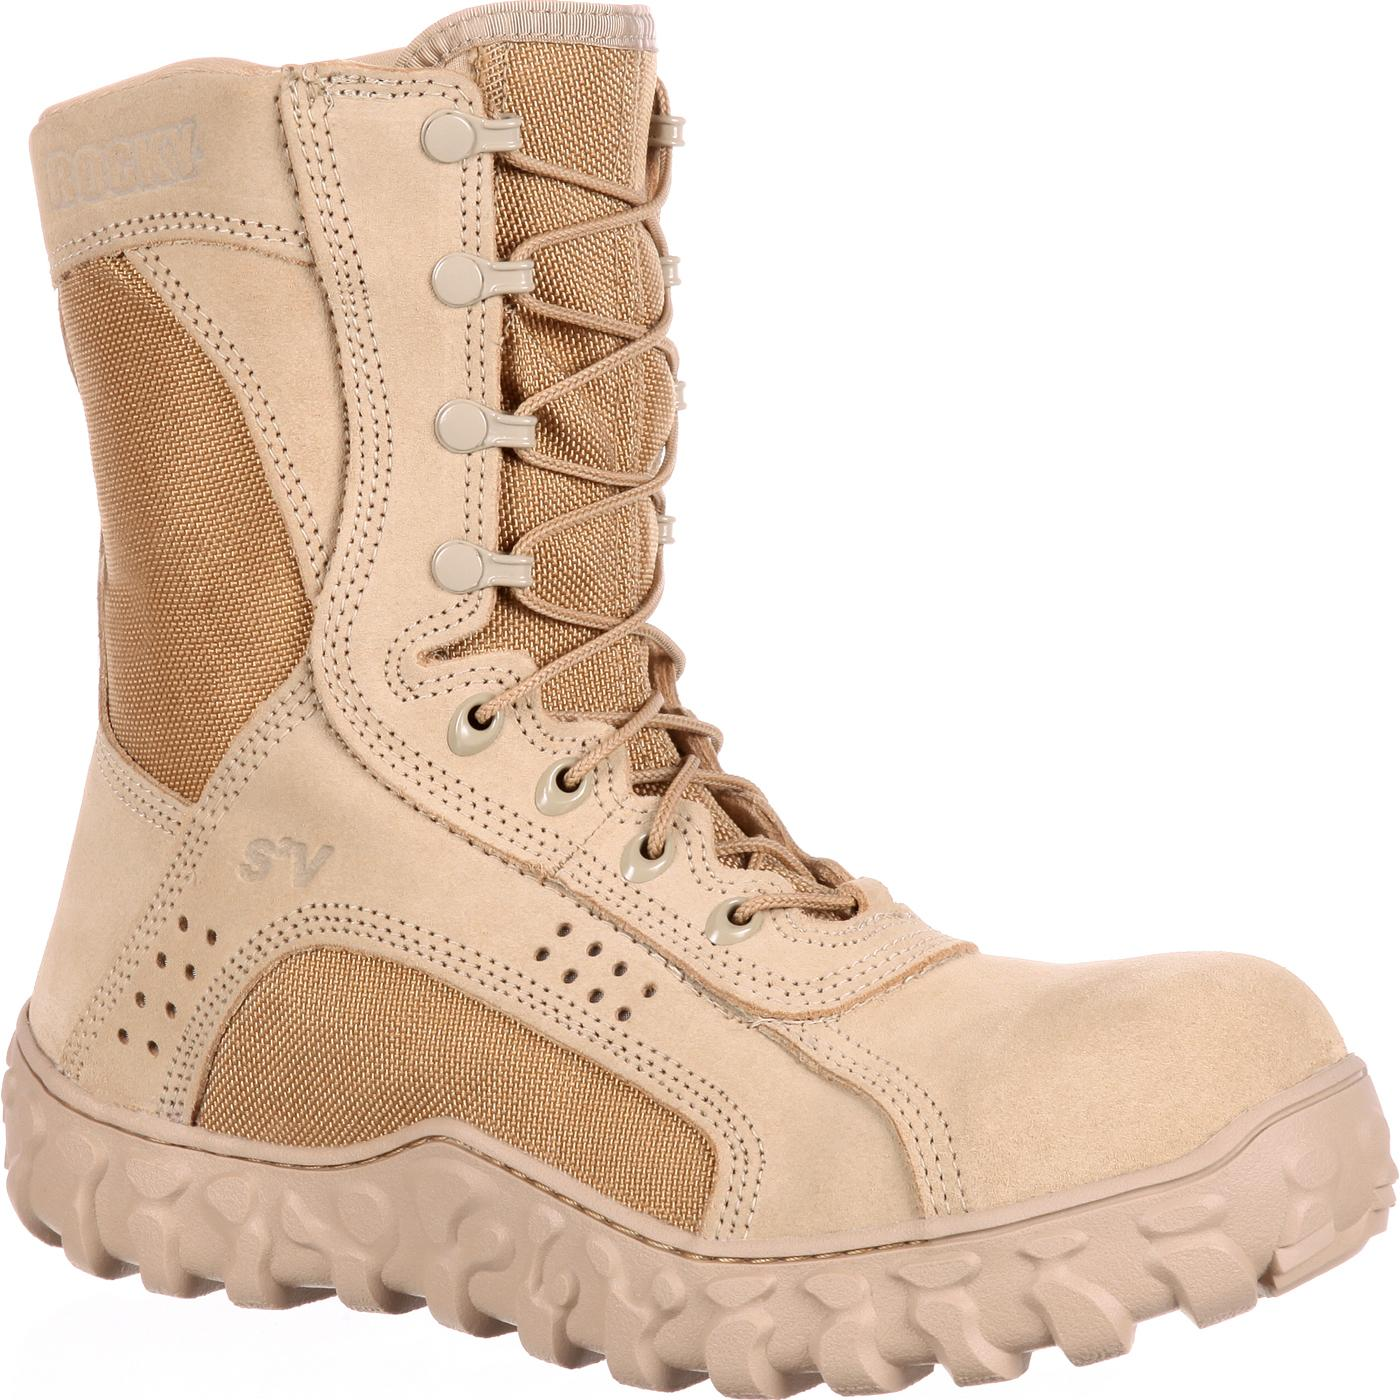 Rocky S2V Composite Toe Tactical Military Boot, RKYC027